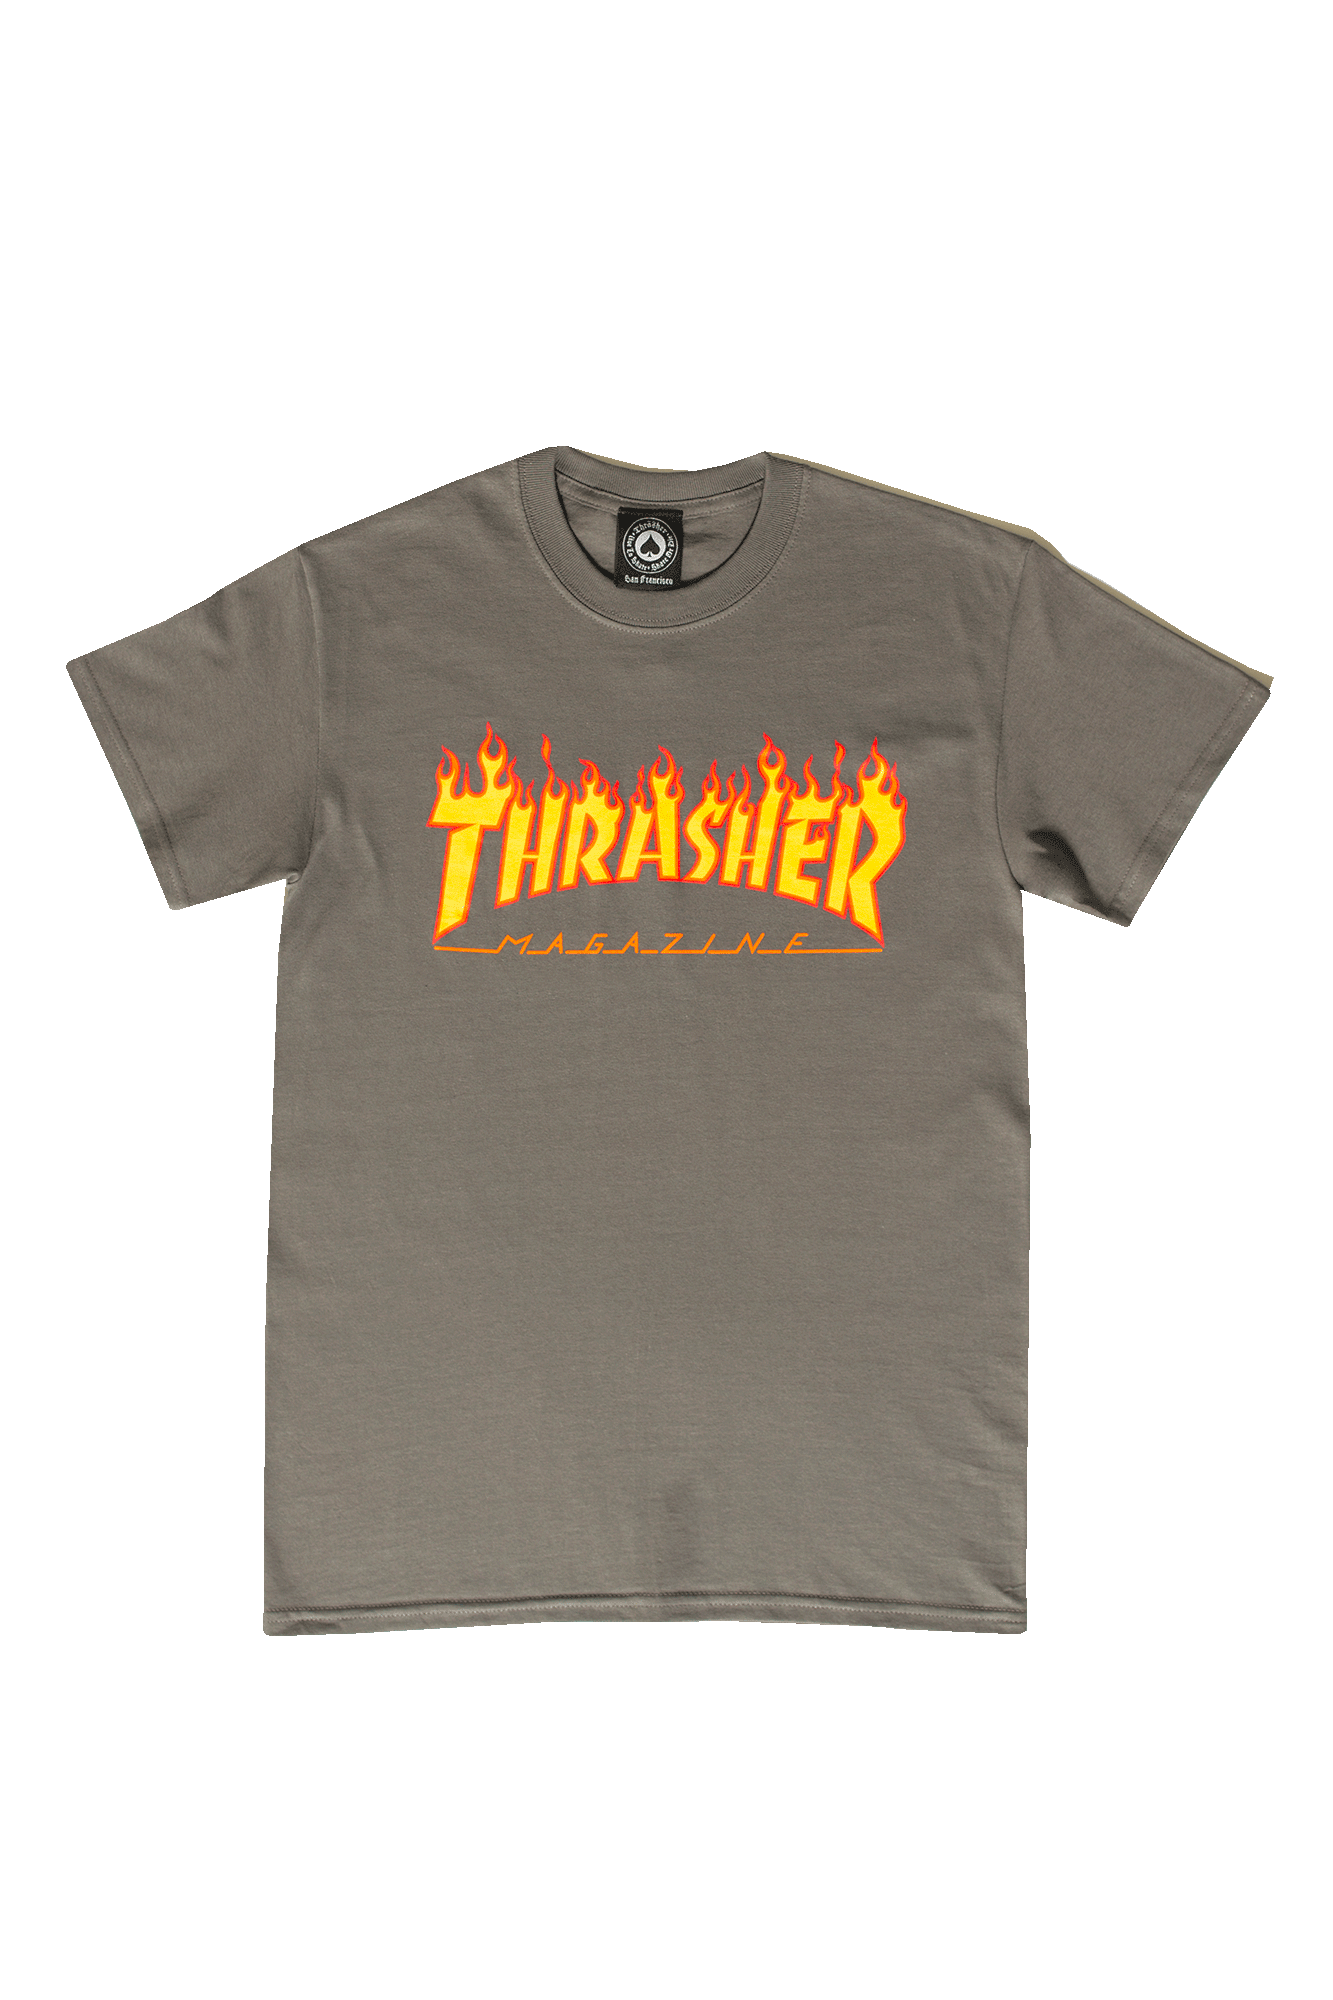 Thrasher T-Shirts Flame Logo T-Shirt Grey 311019#CHARCOAL#C0009#S - One Block Down